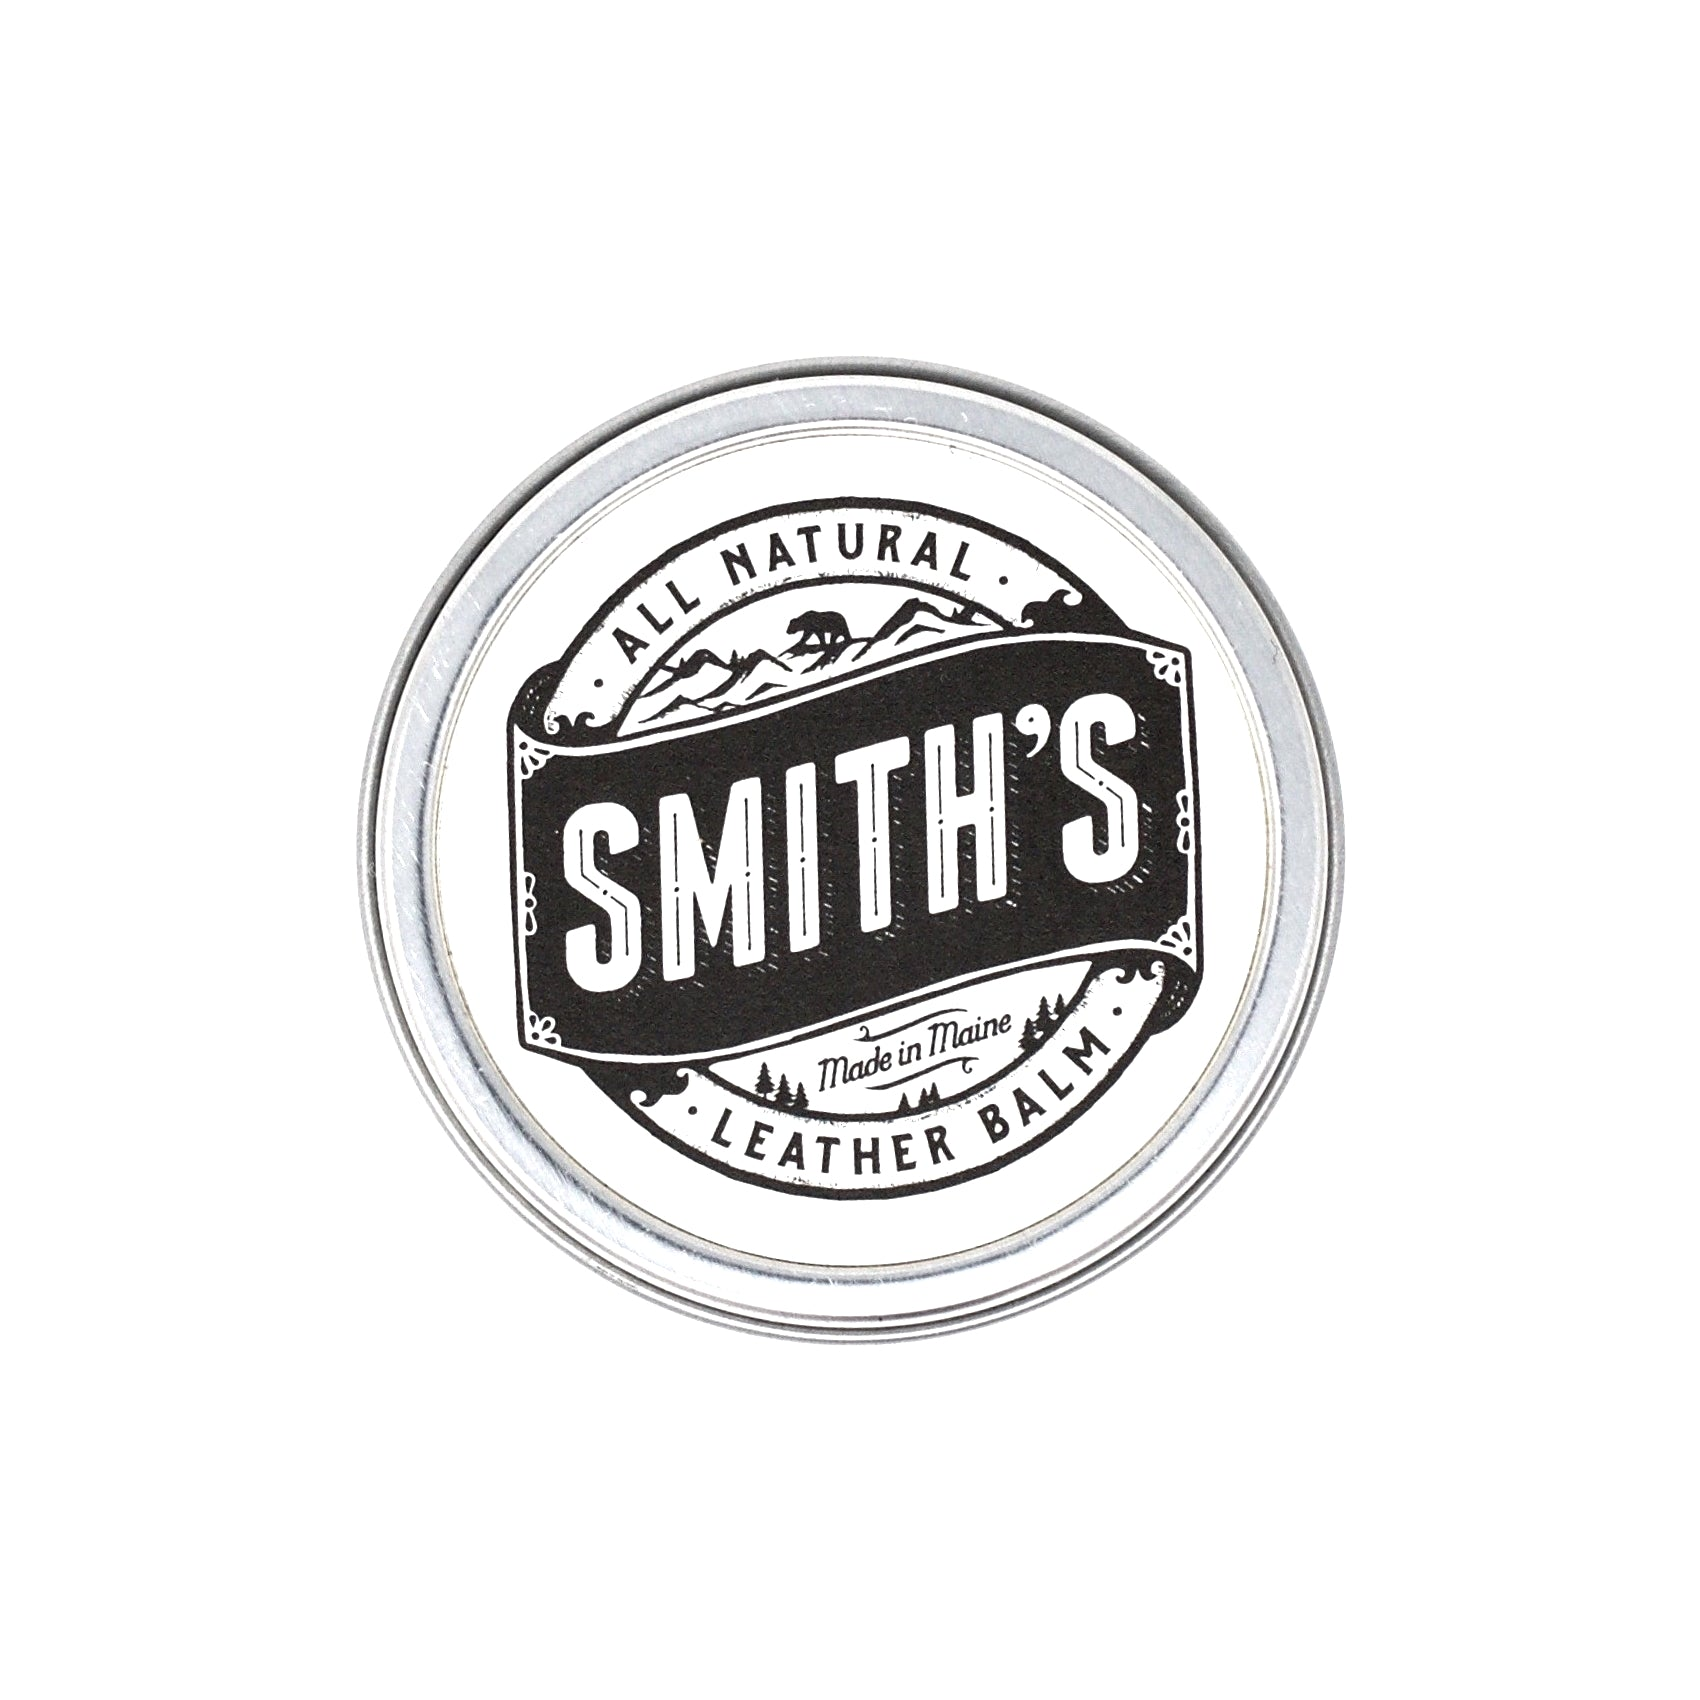 Smith's Leather Balm - Neutral 1oz.